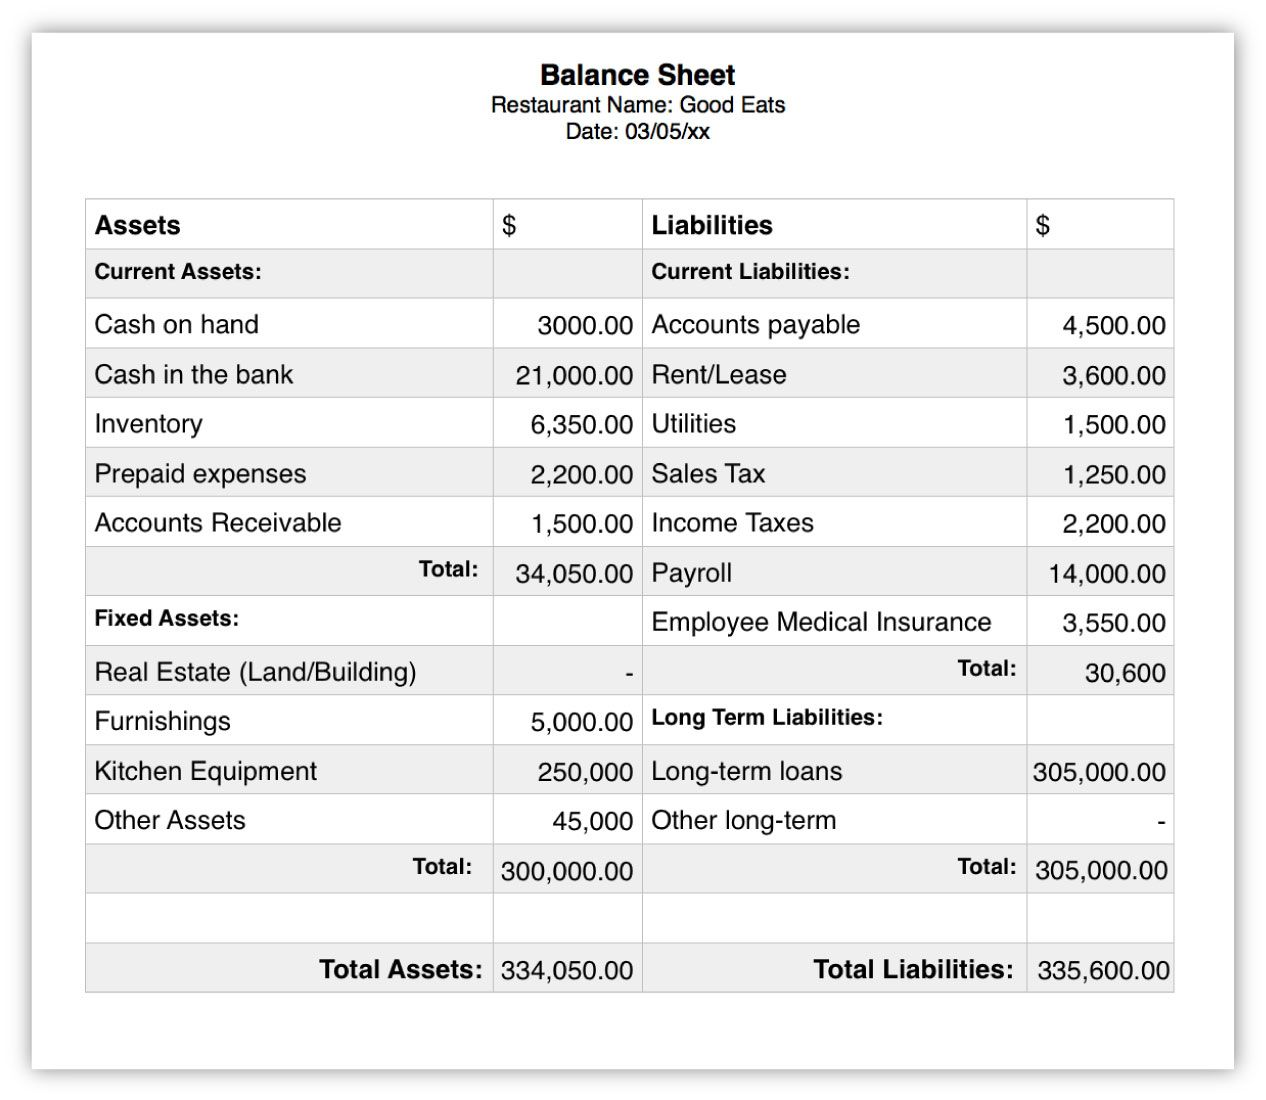 The Breathtaking Restaurant Balance Sheet Sample Zohre Horizonconsulting Co Throughout Business Valuation Financial Statements Financial Statement Templates